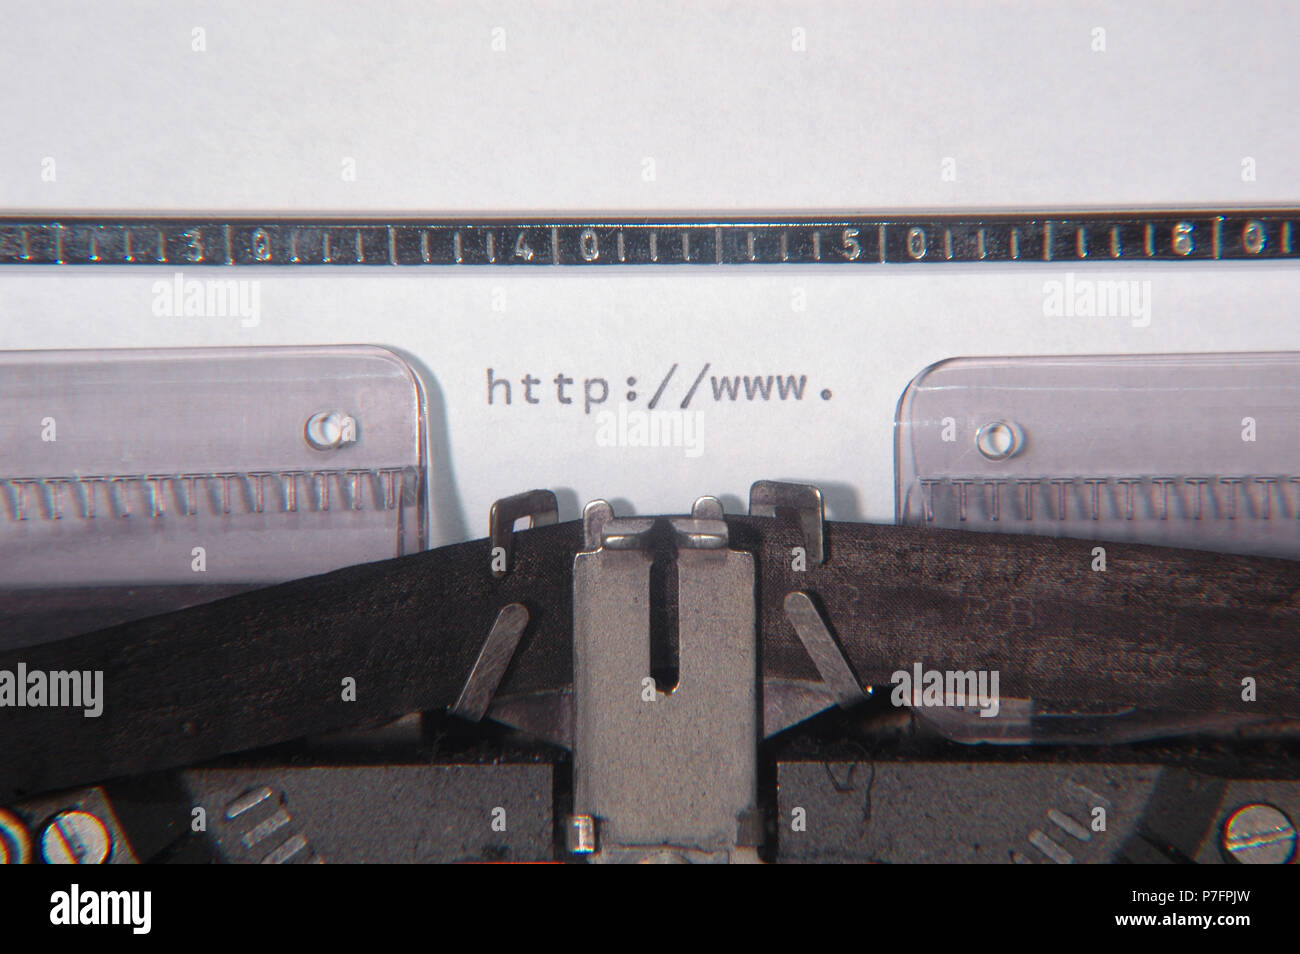 Sheet of paper in a typewriter with the letters http://www., Internet caricature - Stock Image